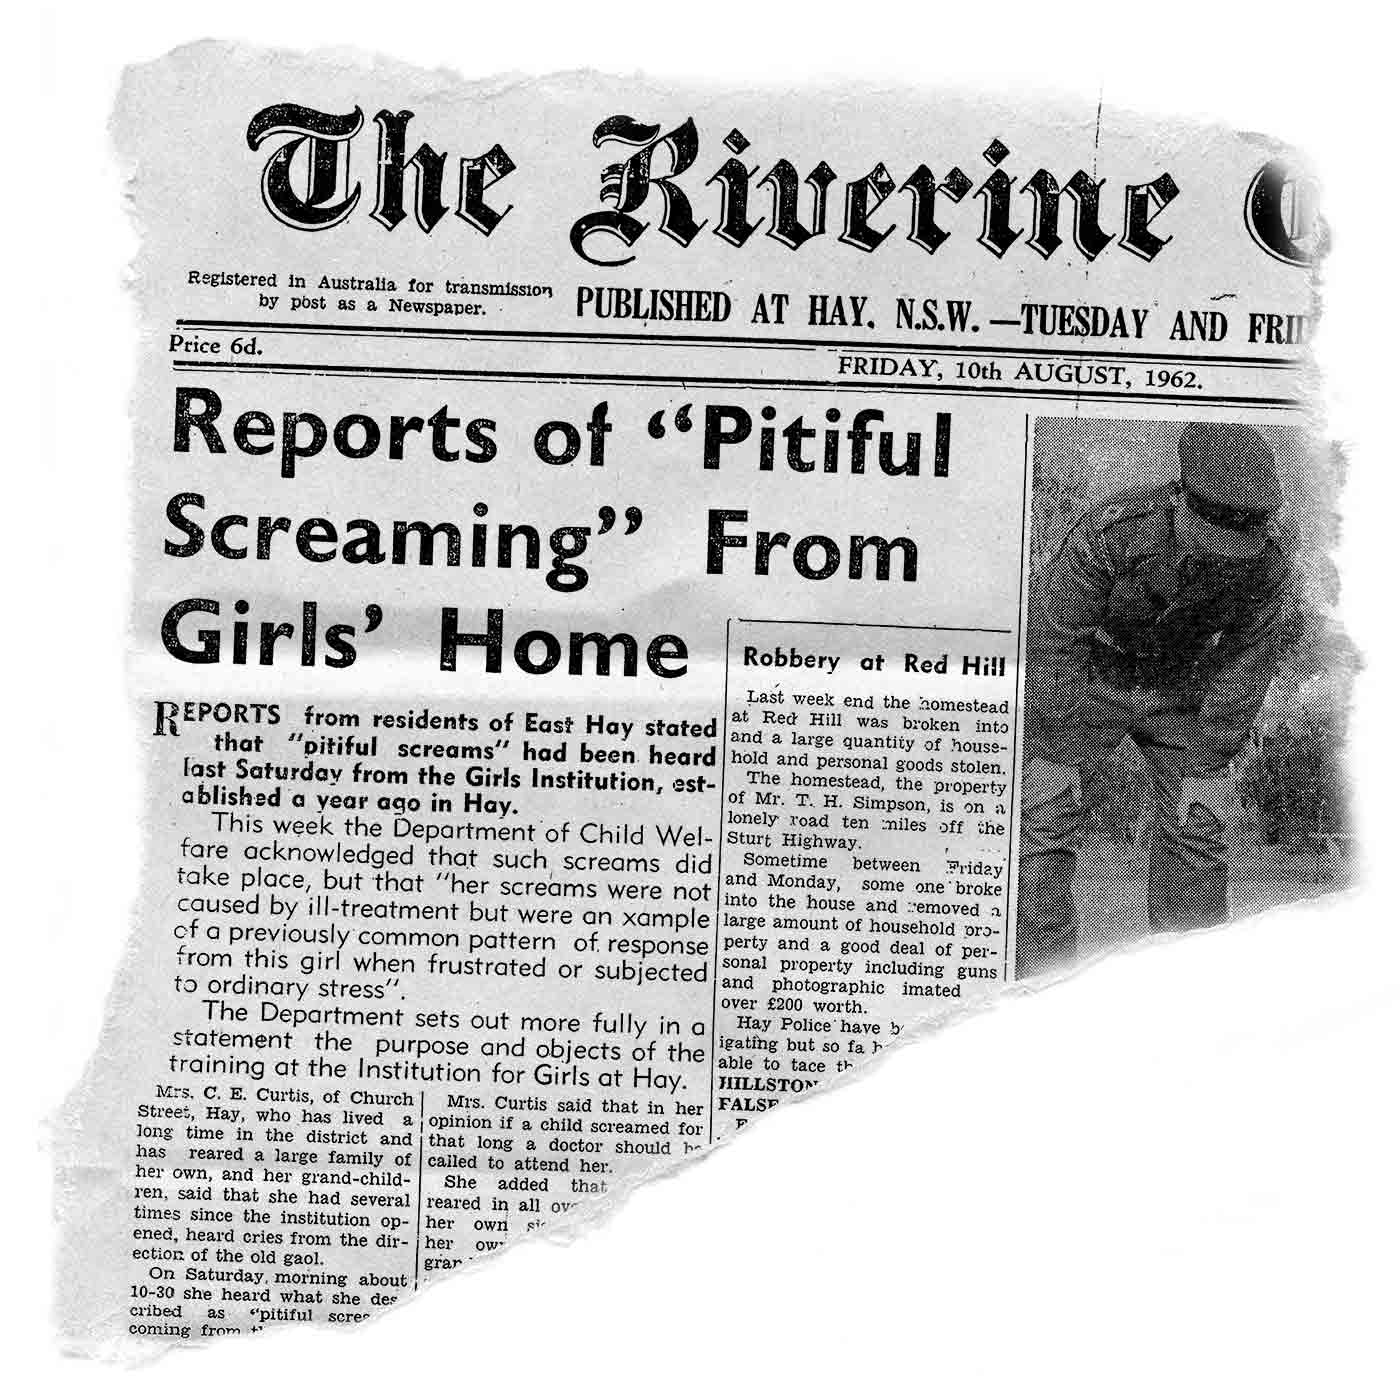 An image of a newspaper article 'Reports of 'Pitiful Screaming' from Girls' Home', 'Riverine Grazier', Hay, New South Wales, Friday 10 August 1962. The article reads 'Reports from residents of East Hay stated that 'pitiful screams' had been heard last Saturday from the Girls Institution, established a year ago in Hay.  This week the Department of Child Welfare acknowledged that such screams did take place, but that 'her screams were not caused by ill-treatment but were an example of a previously common pattern of response from this girl when frustrated or subjected to ordinary stress'. The Department sets out more fully in a statement the purpose and objects of the training at the Institution for Girls at Hay.' - click to view larger image